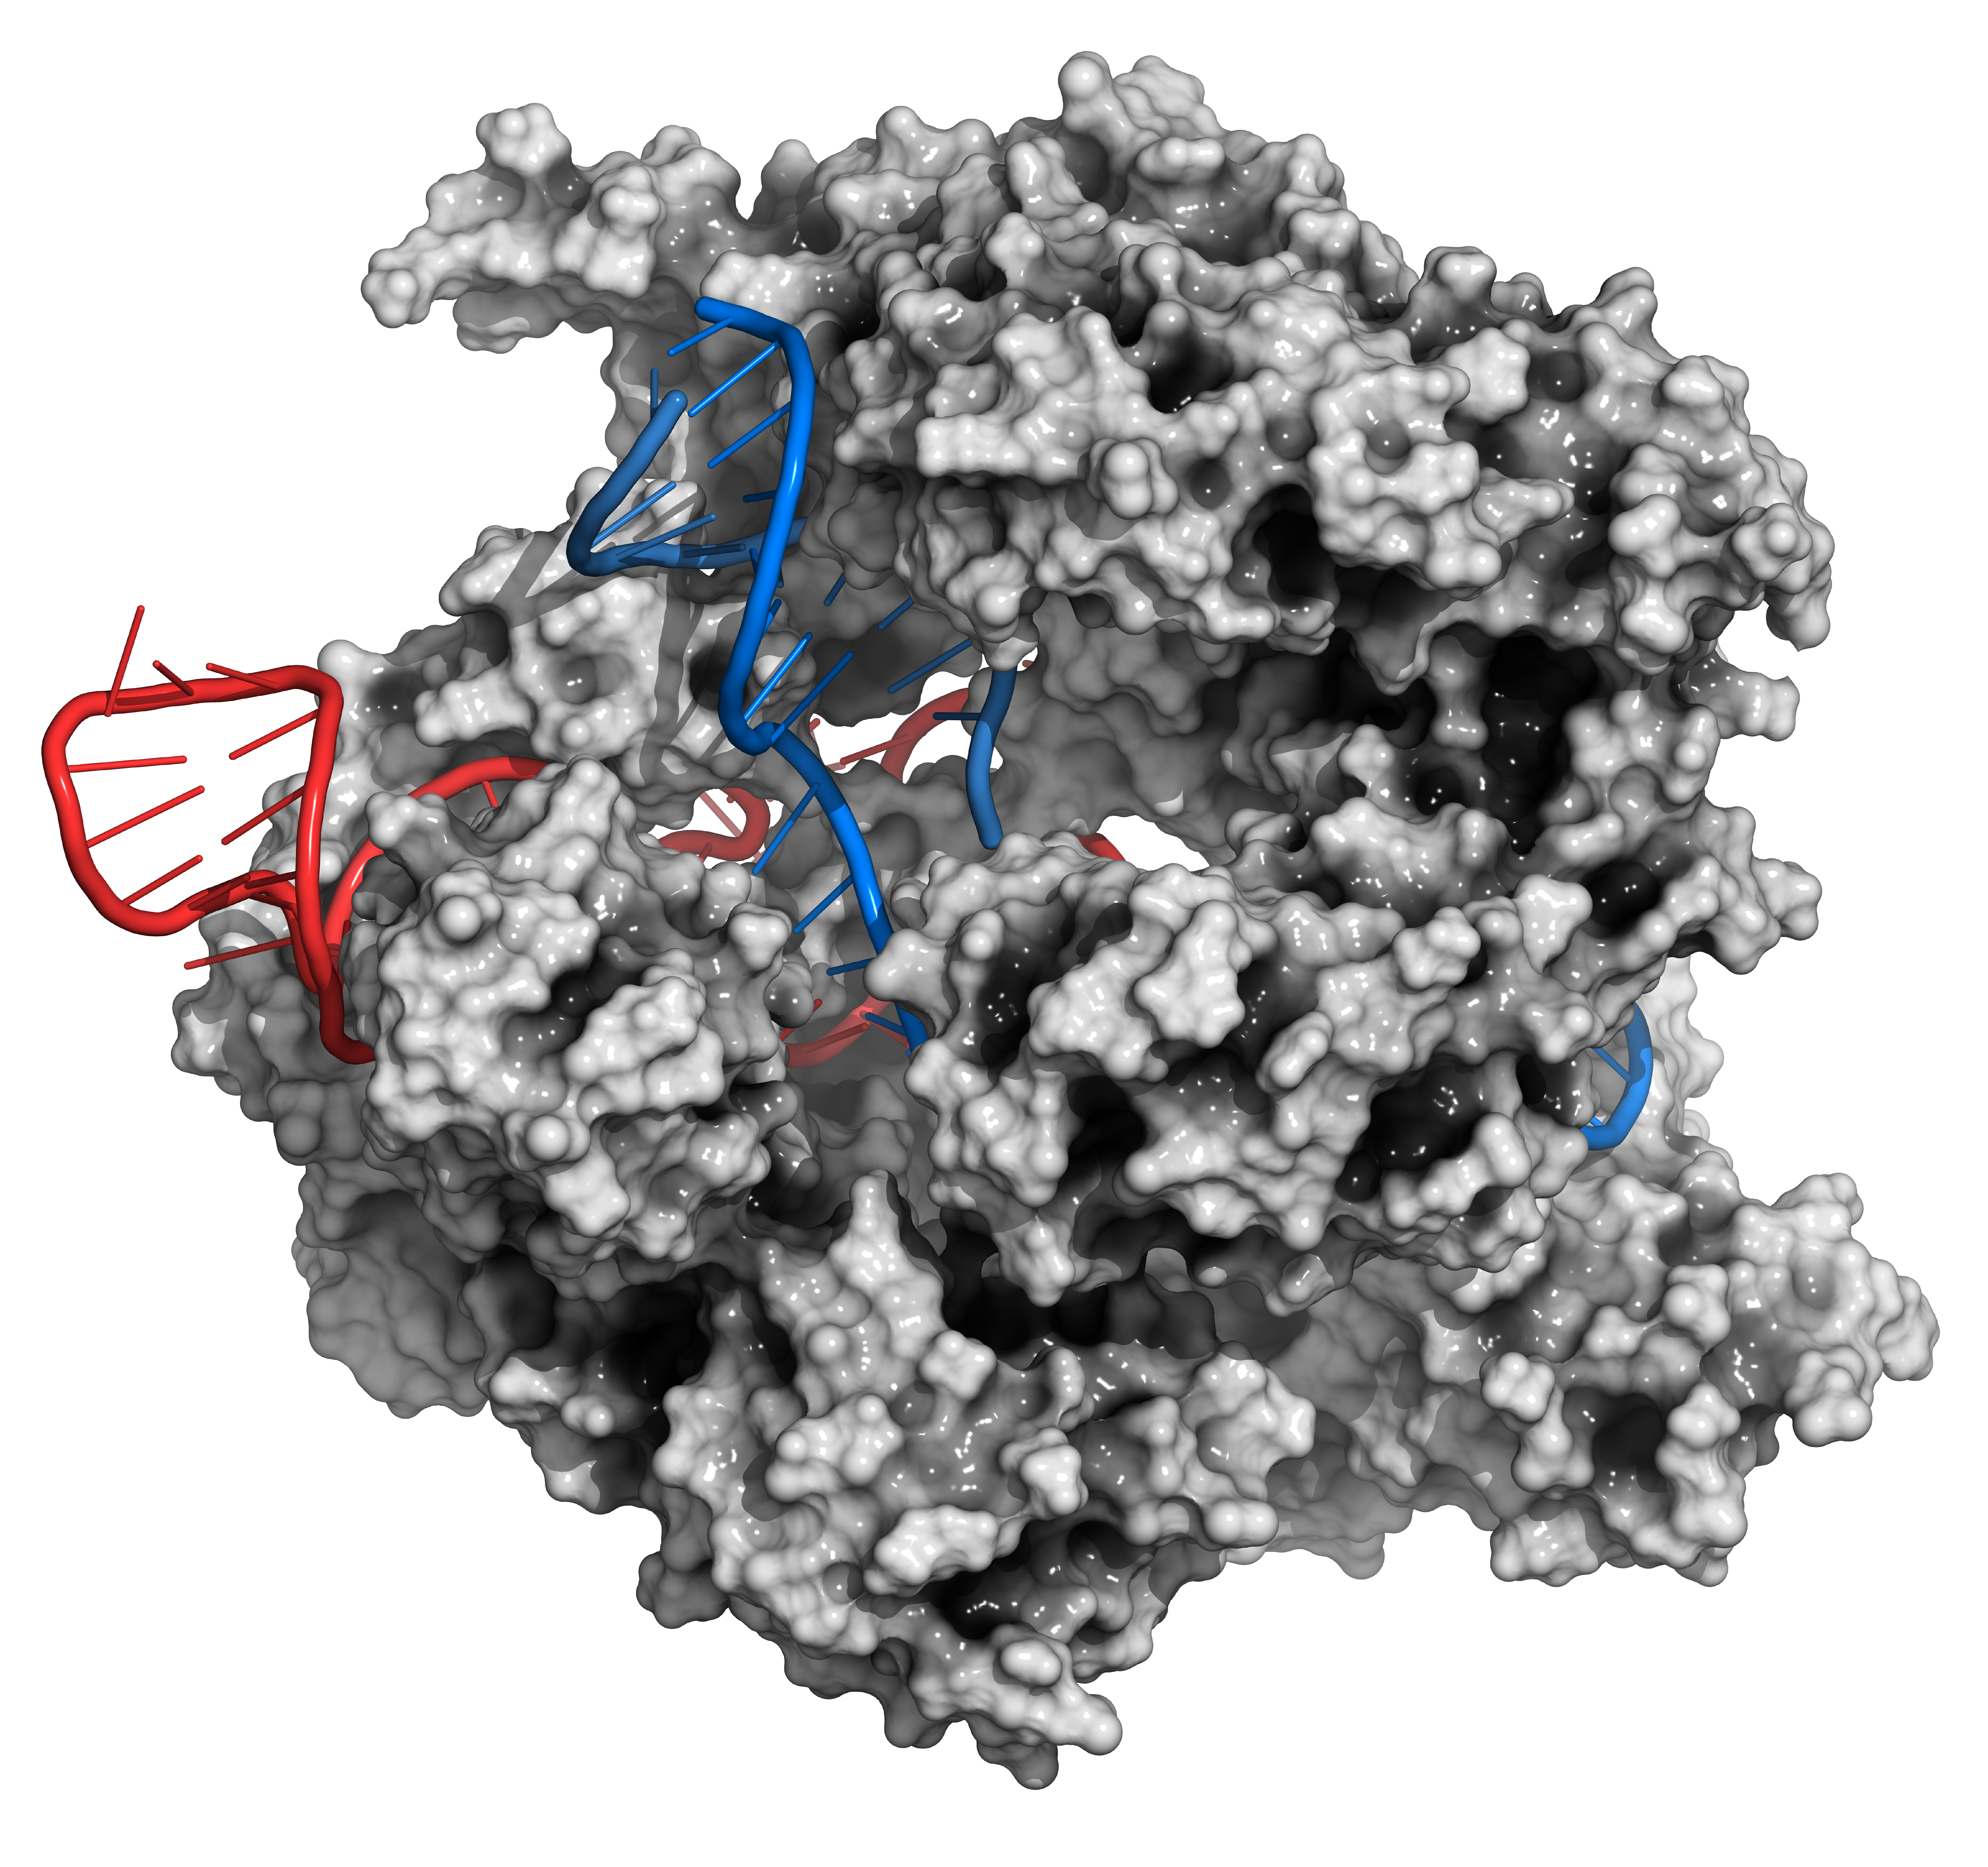 CRISPR-CAS9 gene editing complex from Streptococcus pyogenes. The Cas9 nuclease protein uses a guide RNA sequence to cut DNA at a complementary site. Cas9 protein: white surface model. DNA fragments: blue ladder cartoon. RNA: red ladder cartoon.